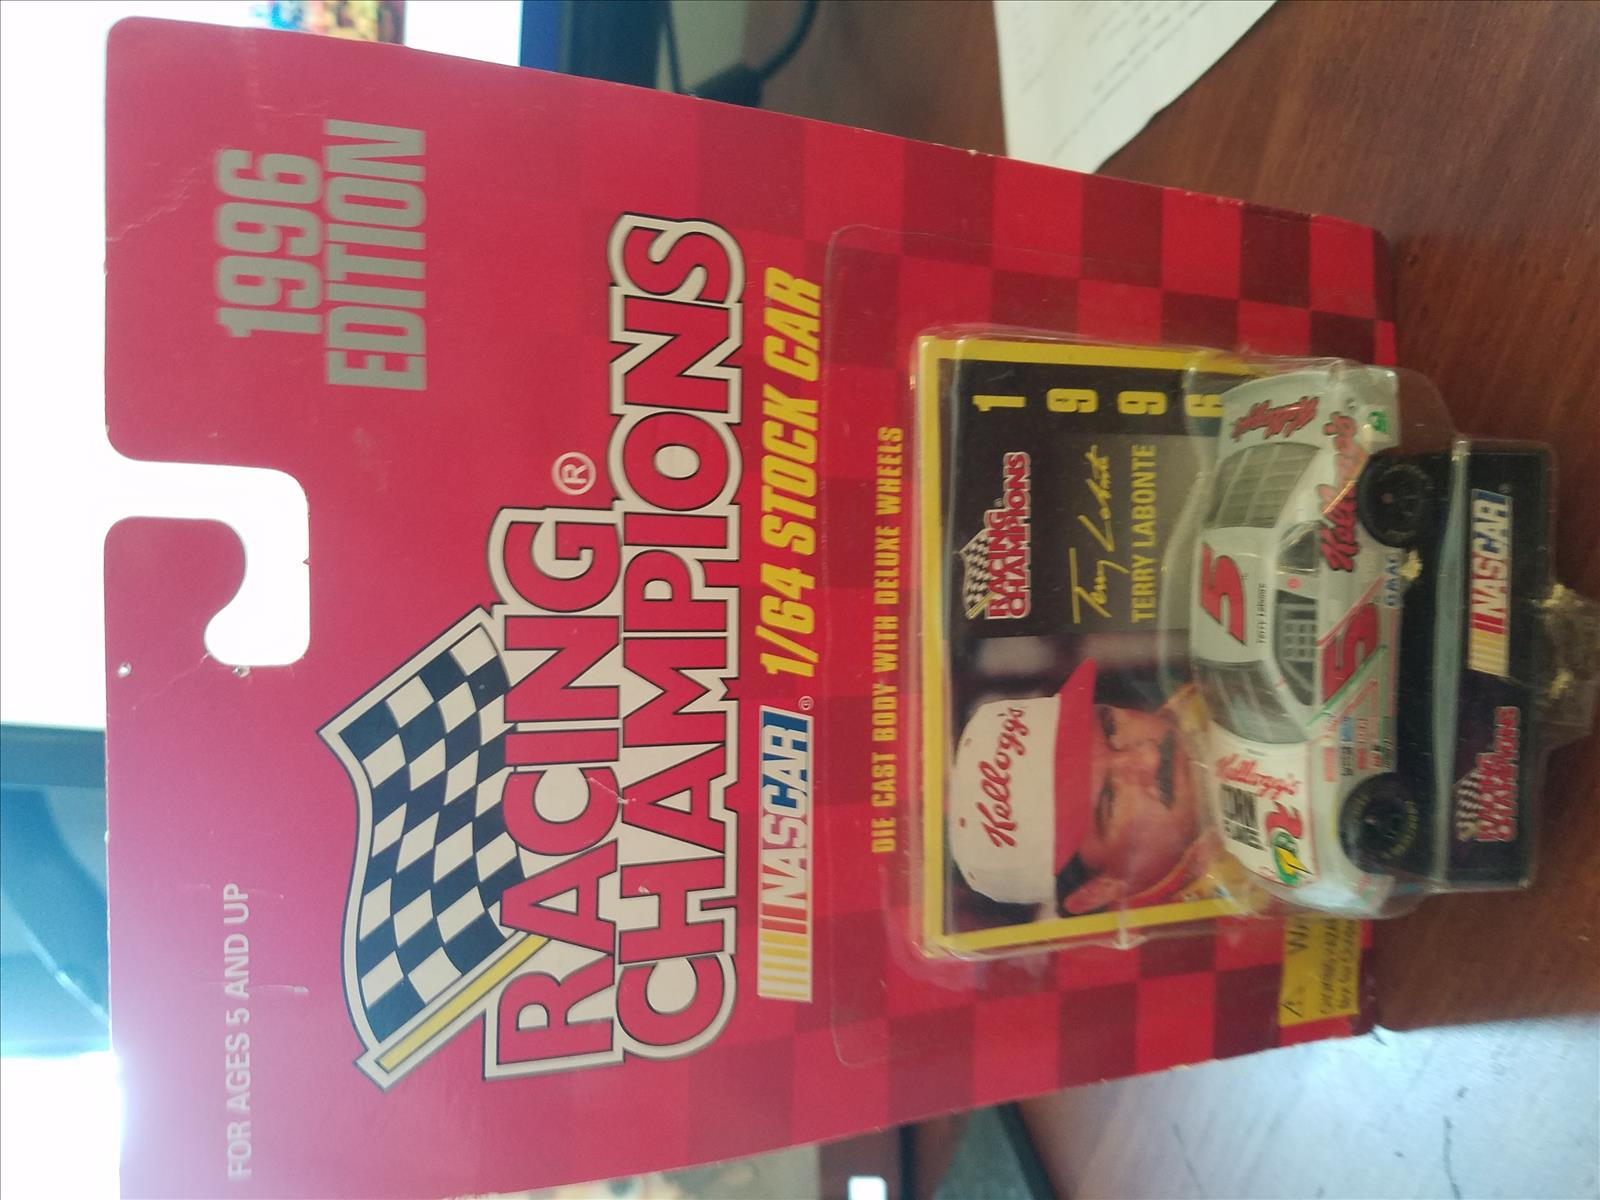 1996 Terry Labonte NASCAR Diecast 5 Kelloggs Iron Man CWC 1:64 Racing Champions 1996 Edition 1